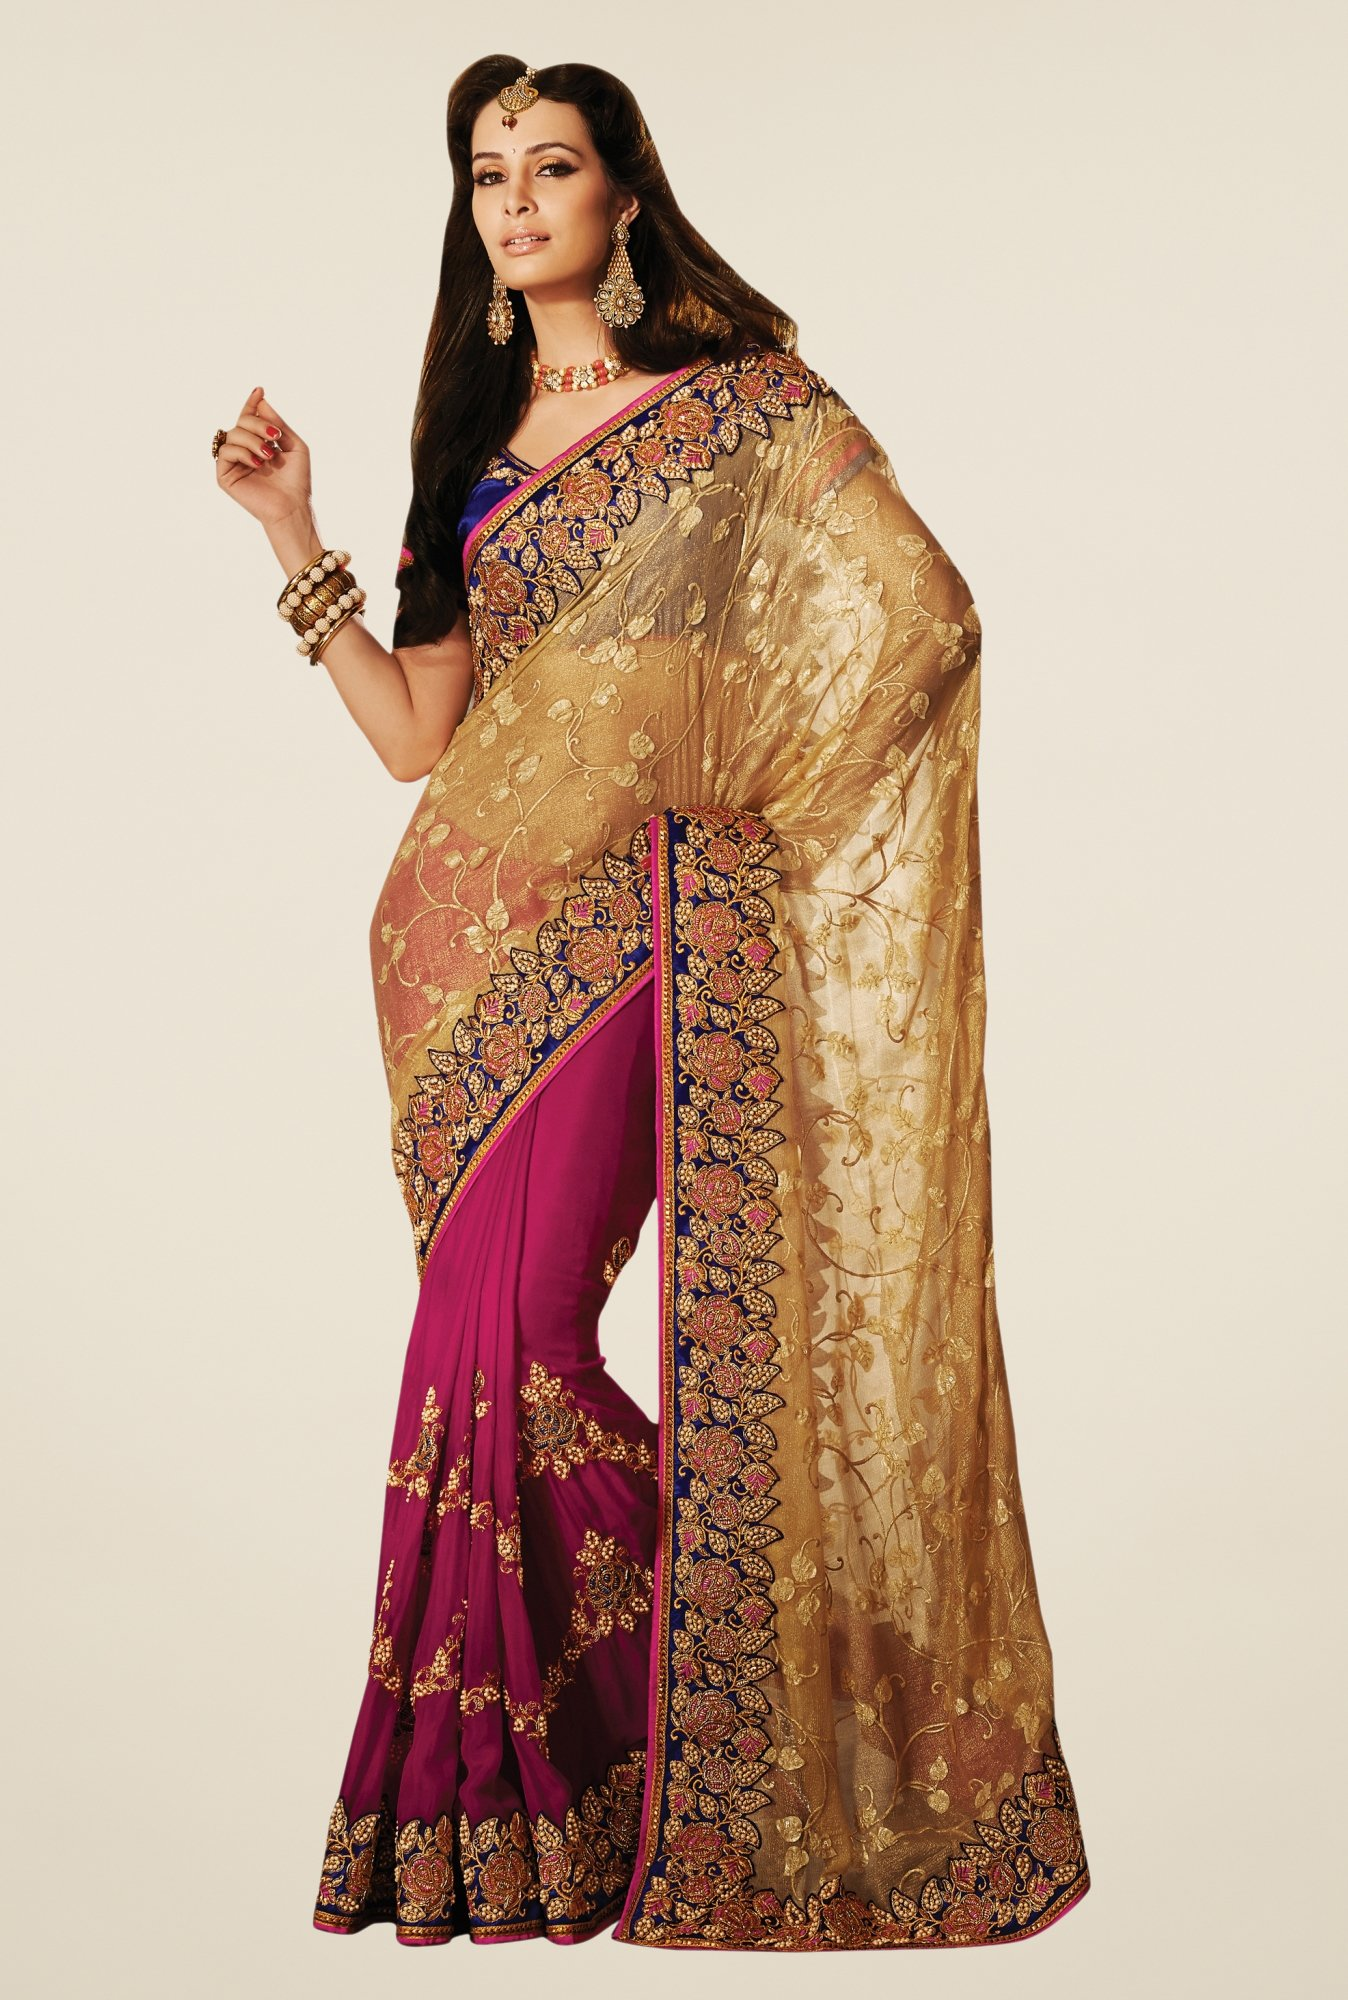 Triveni Magenta & Gold Embroidered Faux Georgette Saree